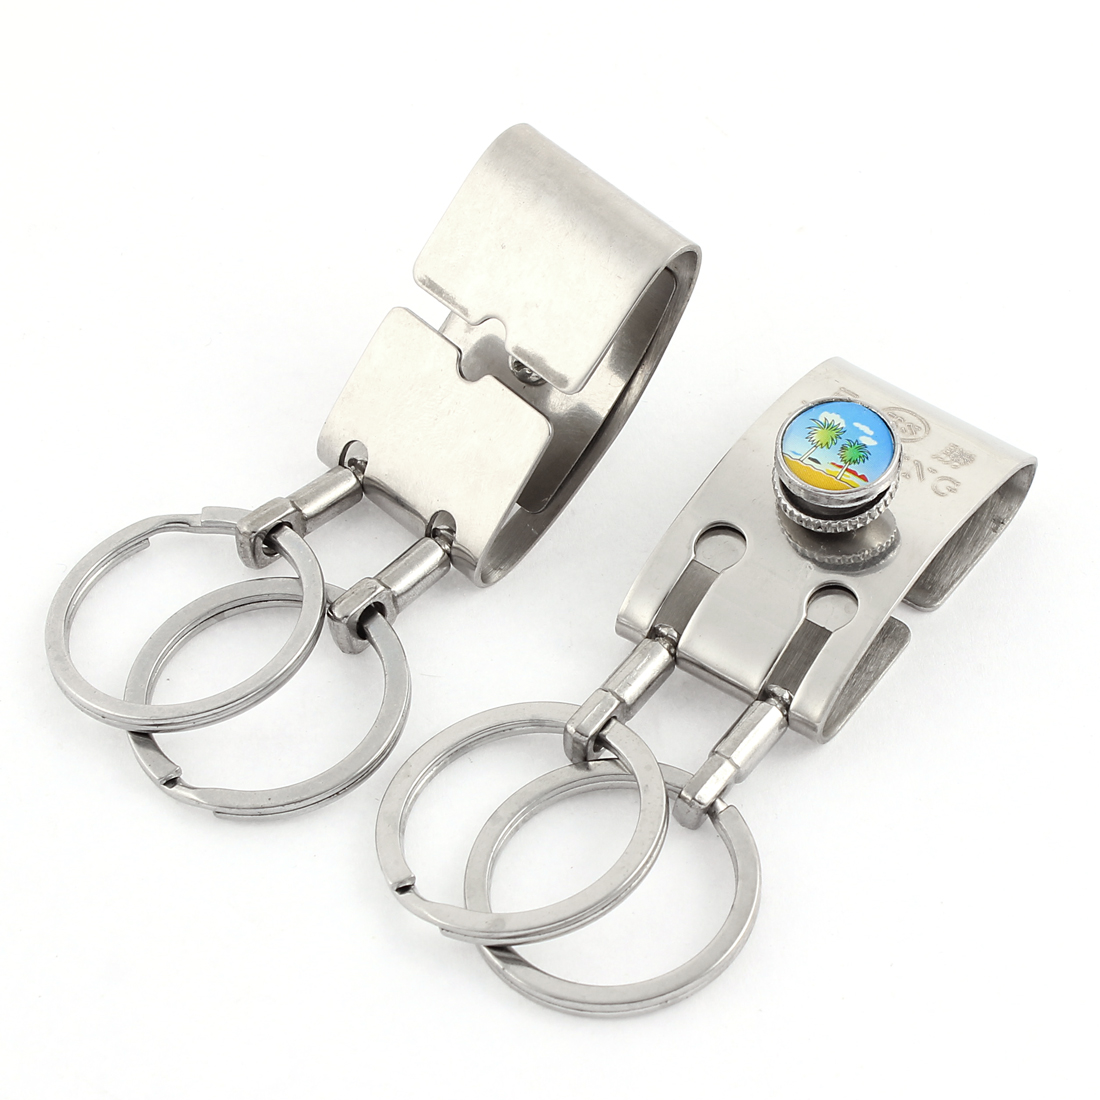 2 Pcs Metal Double Rings Safe Key Chain Keyring Holder Silver Tone